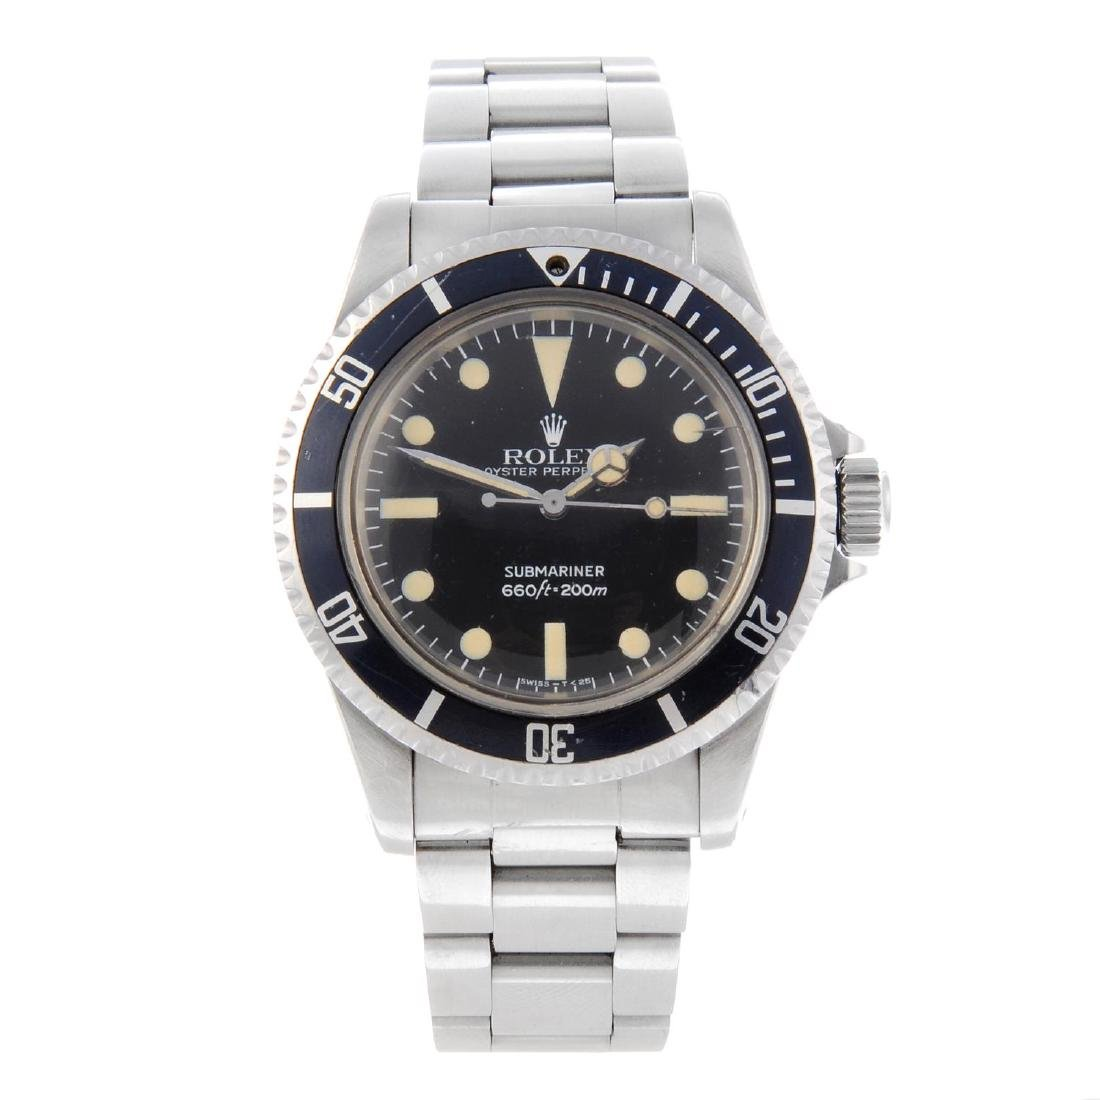 ROLEX - a gentleman's Oyster Perpetual Submariner